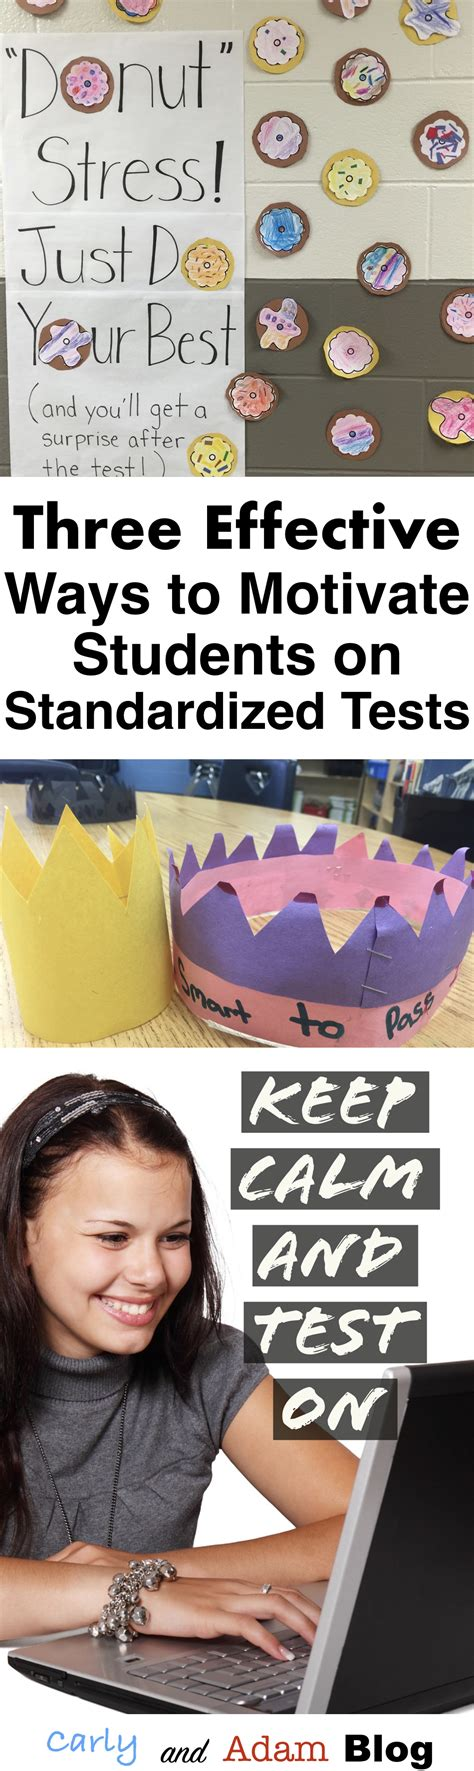 3 Effective Ways To Motivate Students On Standardized Tests — The Carly And Adam Blog